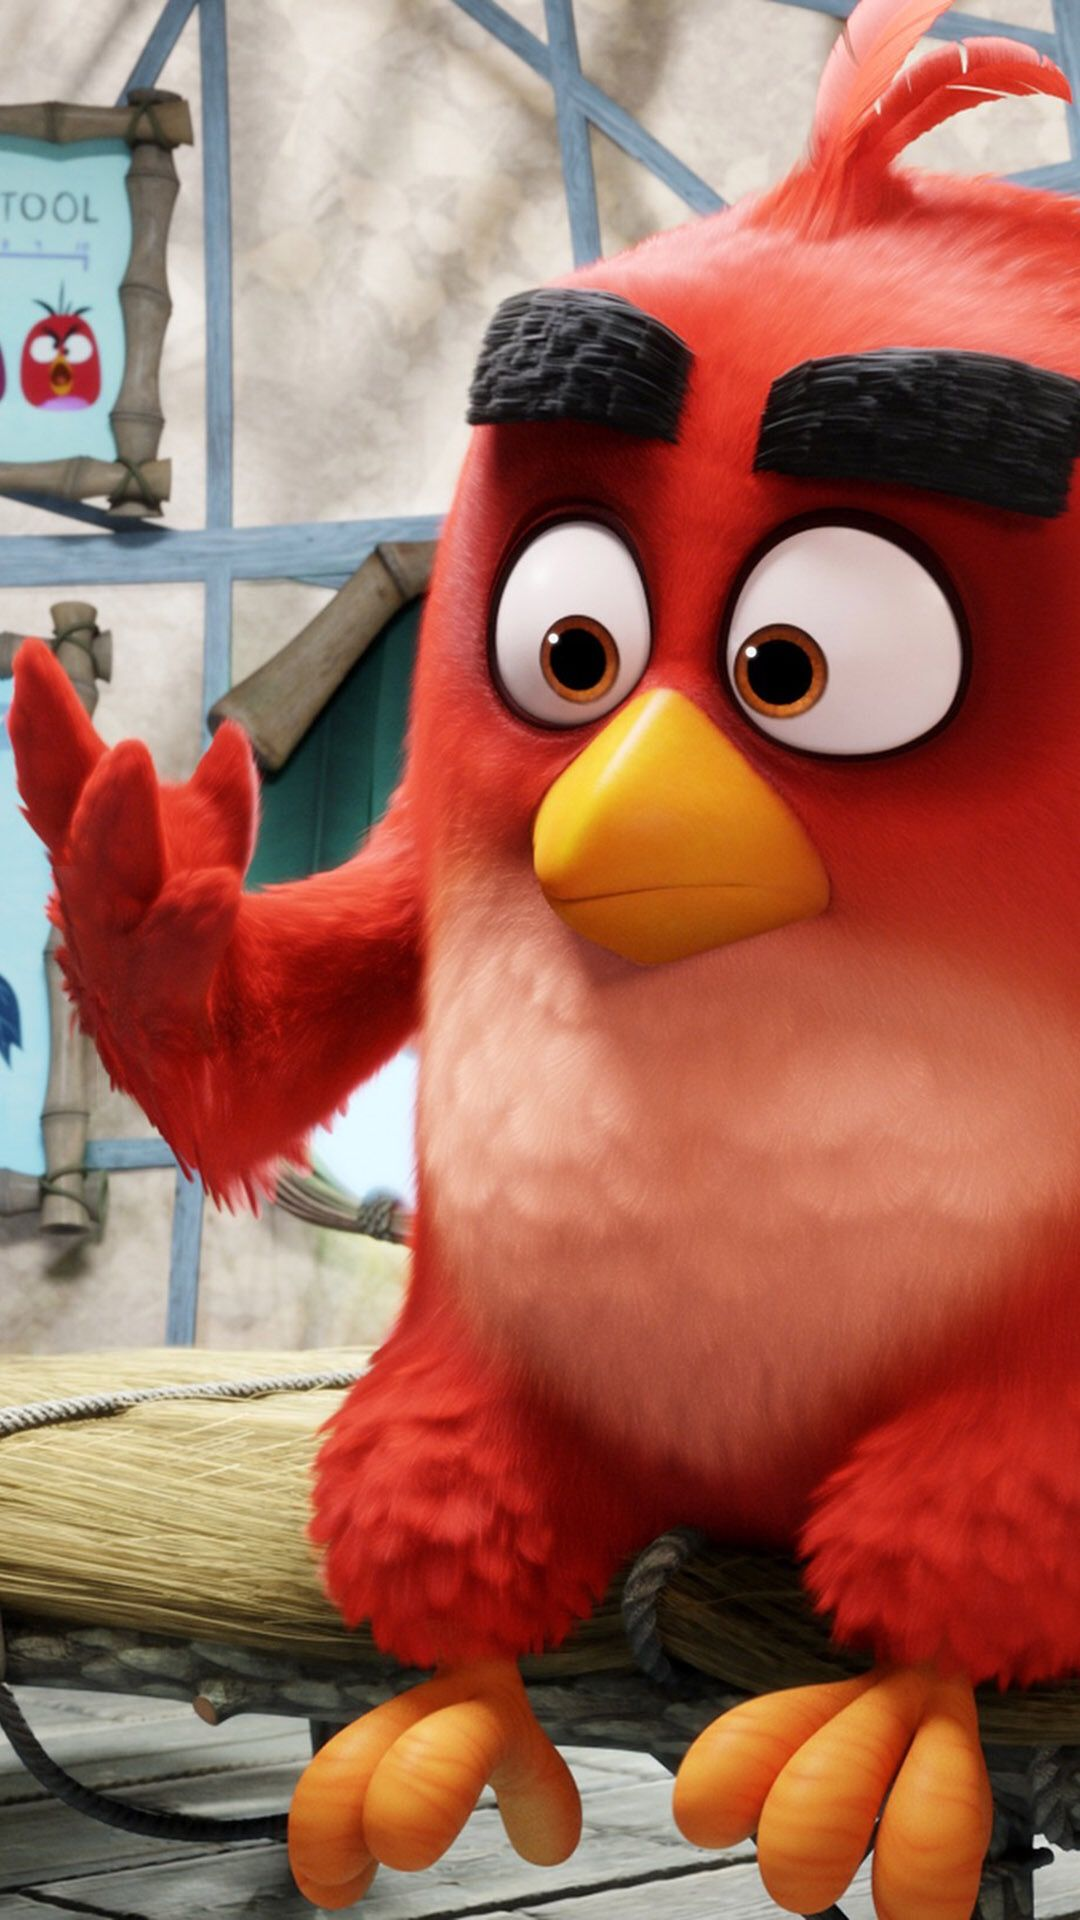 Pin by Bunga on Geek Angry birds, Angry birds movie